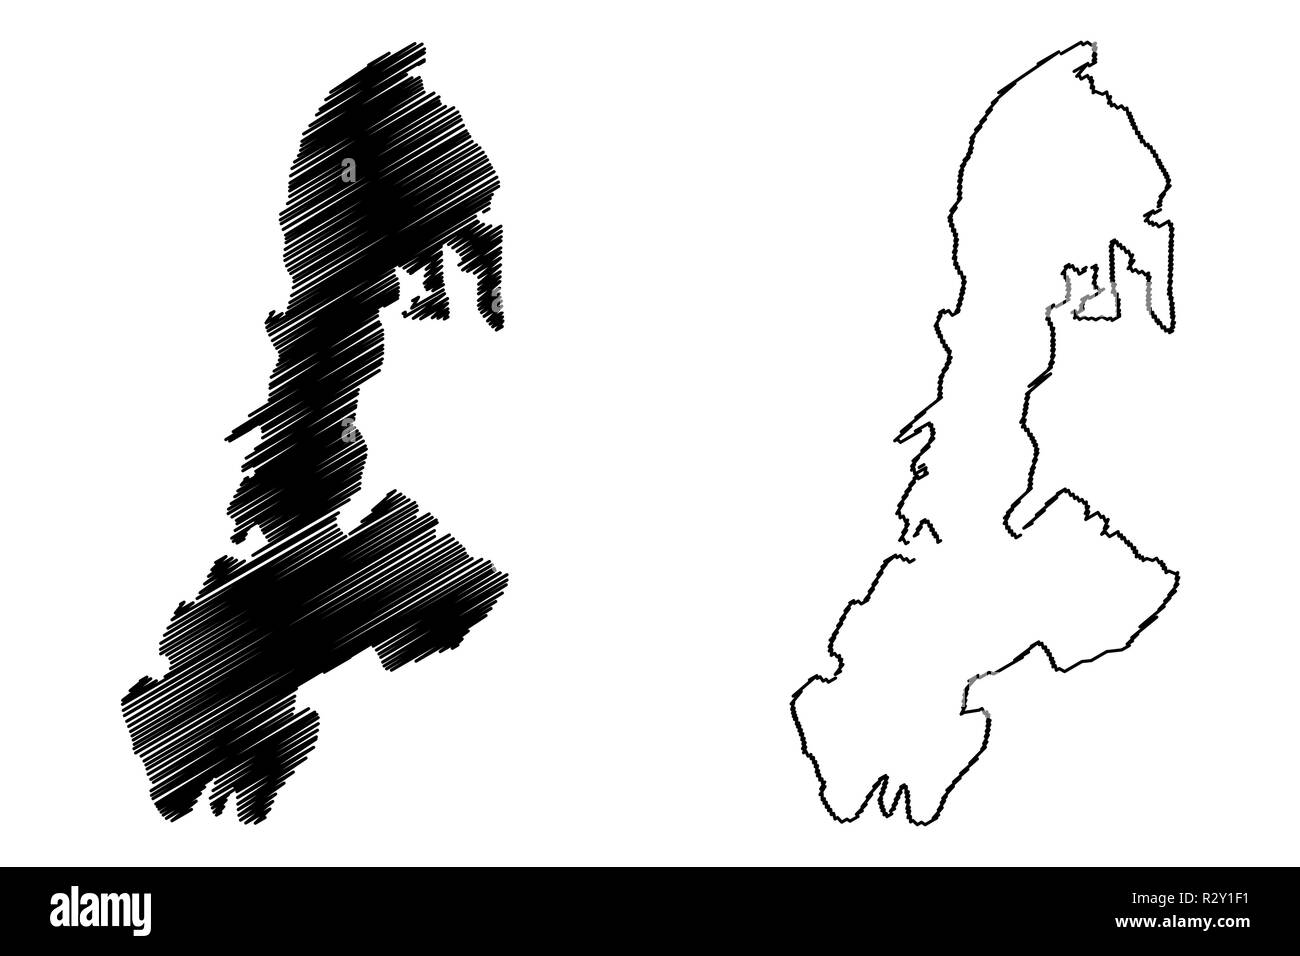 Buton Island (Subdivisions of Indonesia, Provinces of Indonesia) map vector illustration, scribble sketch Buton (Butung, Boeton or Button) map - Stock Image